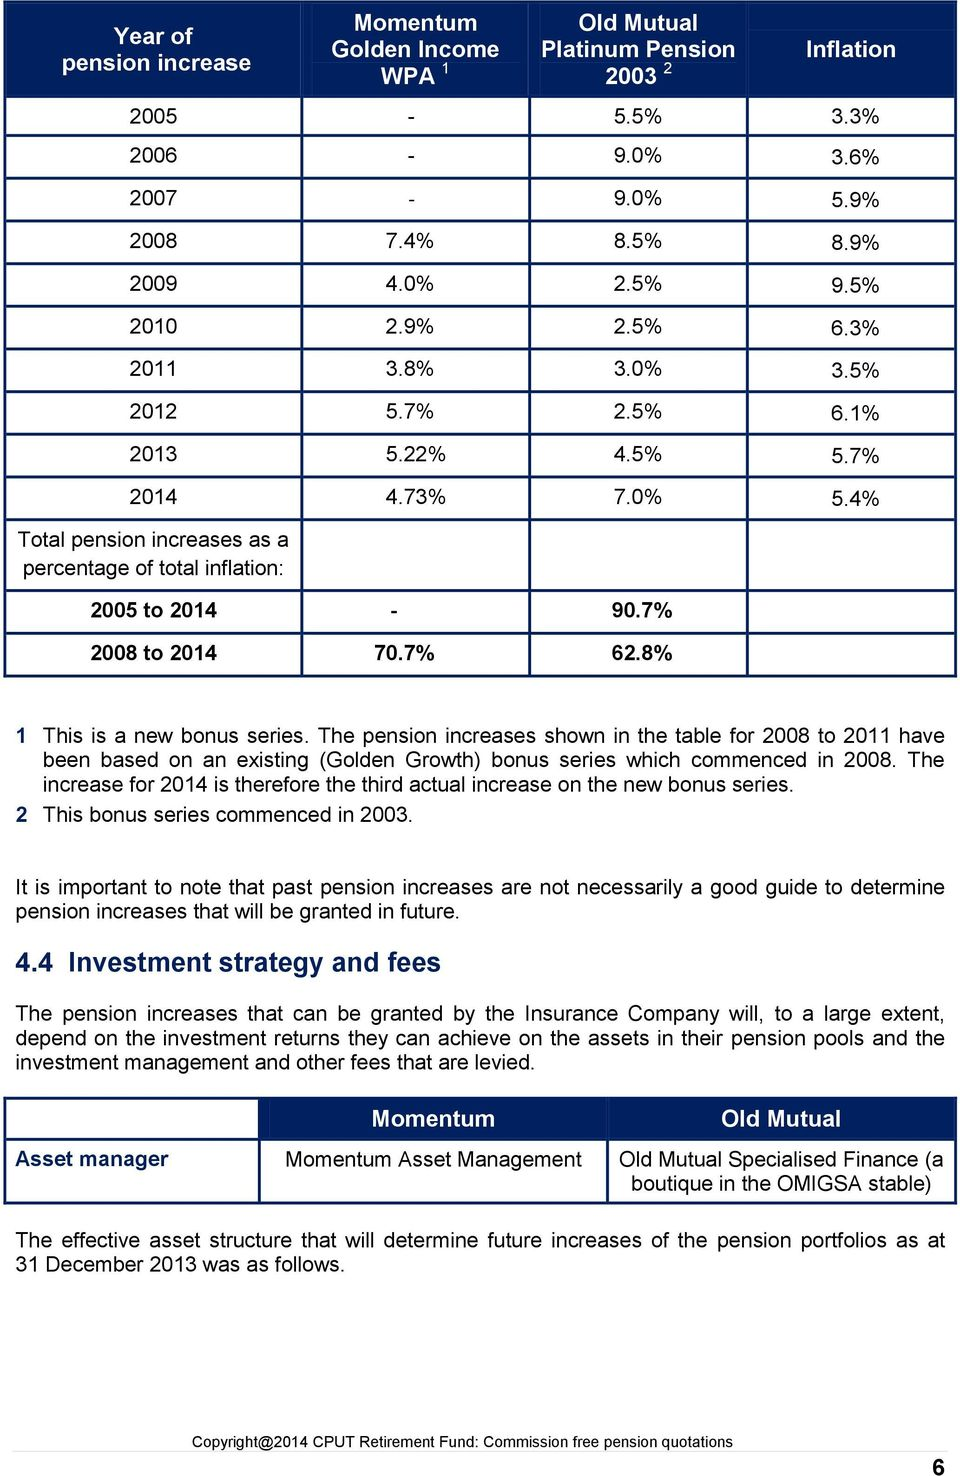 8% 1 This is a new bonus series. The pension increases shown in the table for 2008 to 2011 have been based on an existing (Golden Growth) bonus series which commenced in 2008.